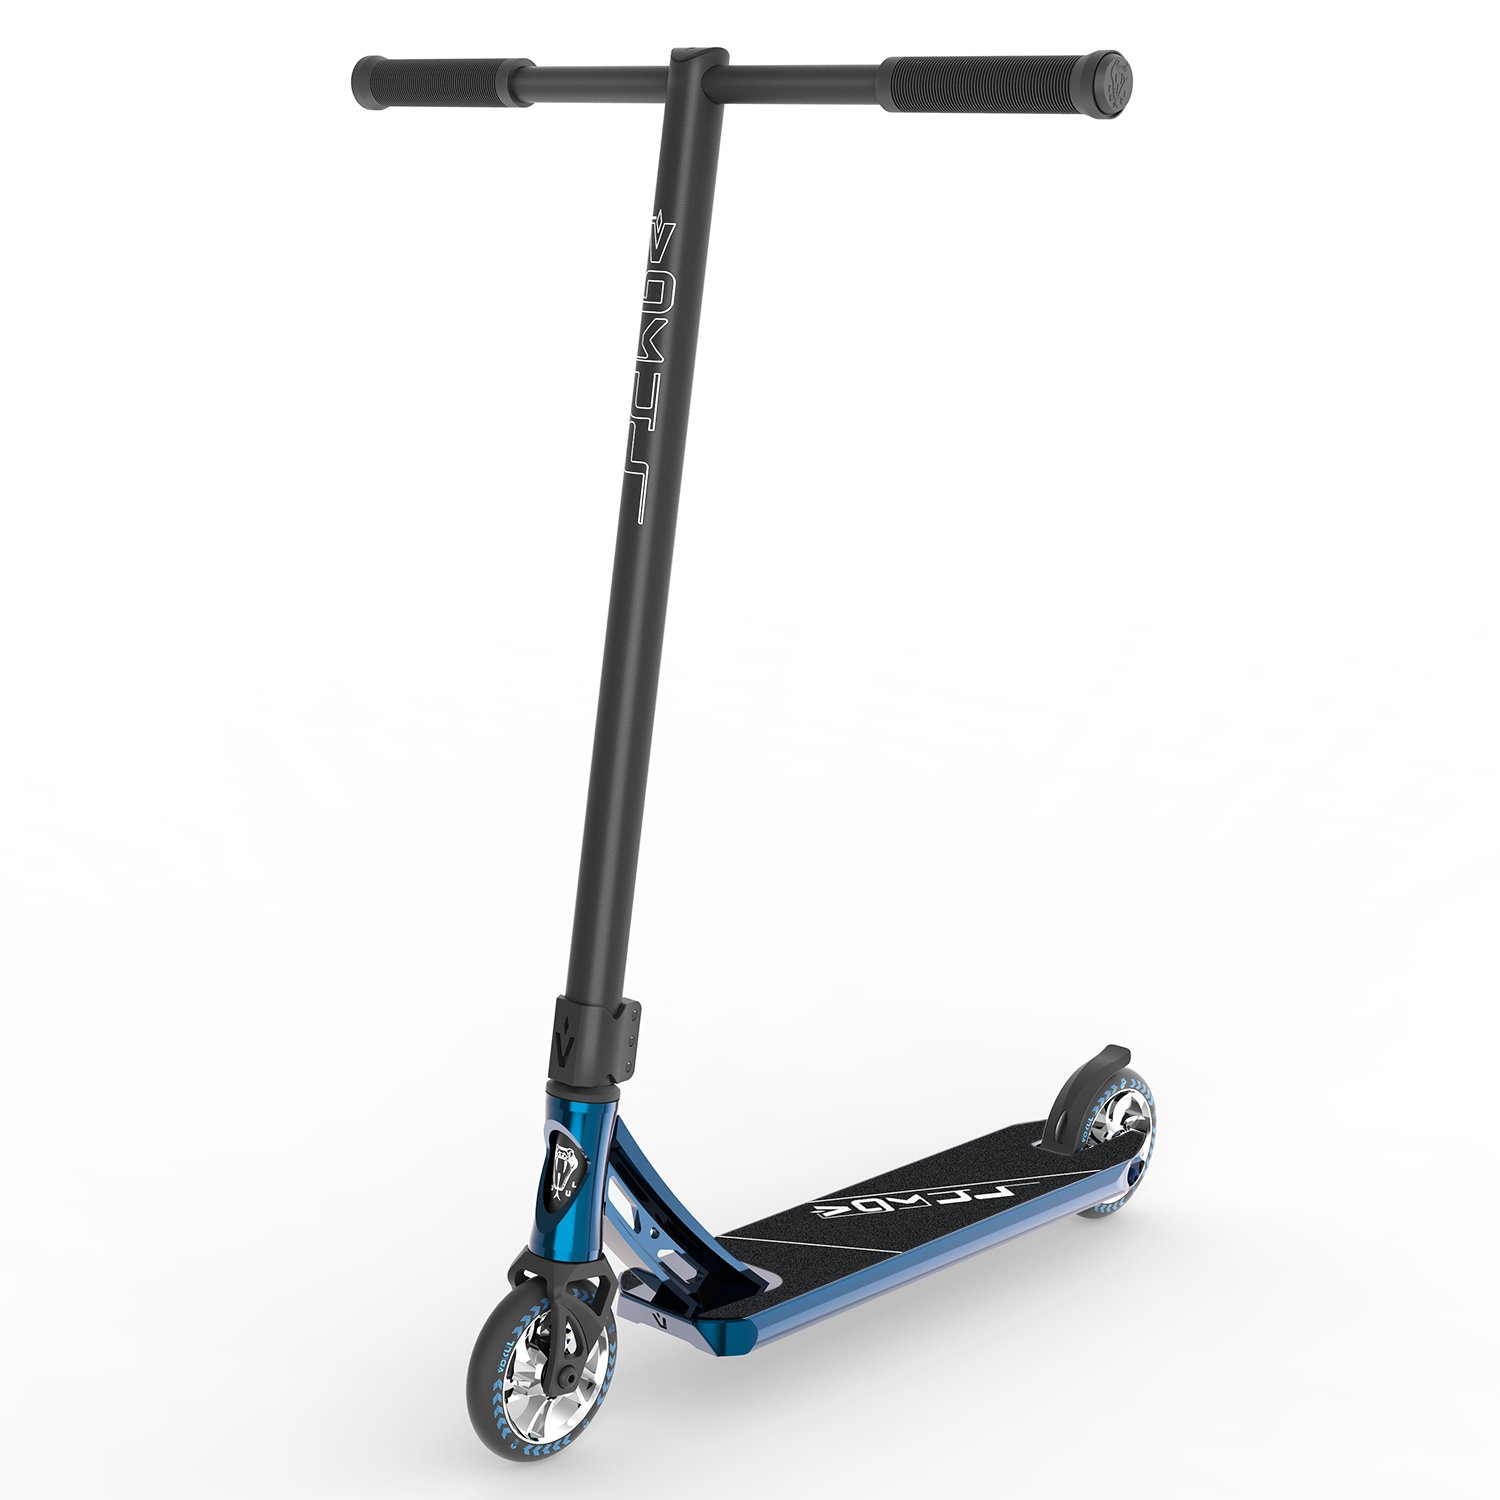 VOKUL LITE Series Complete Freestyle Pro Scooter with Reinforced Frame -Lightweight and 120mm Metal Core Wheels